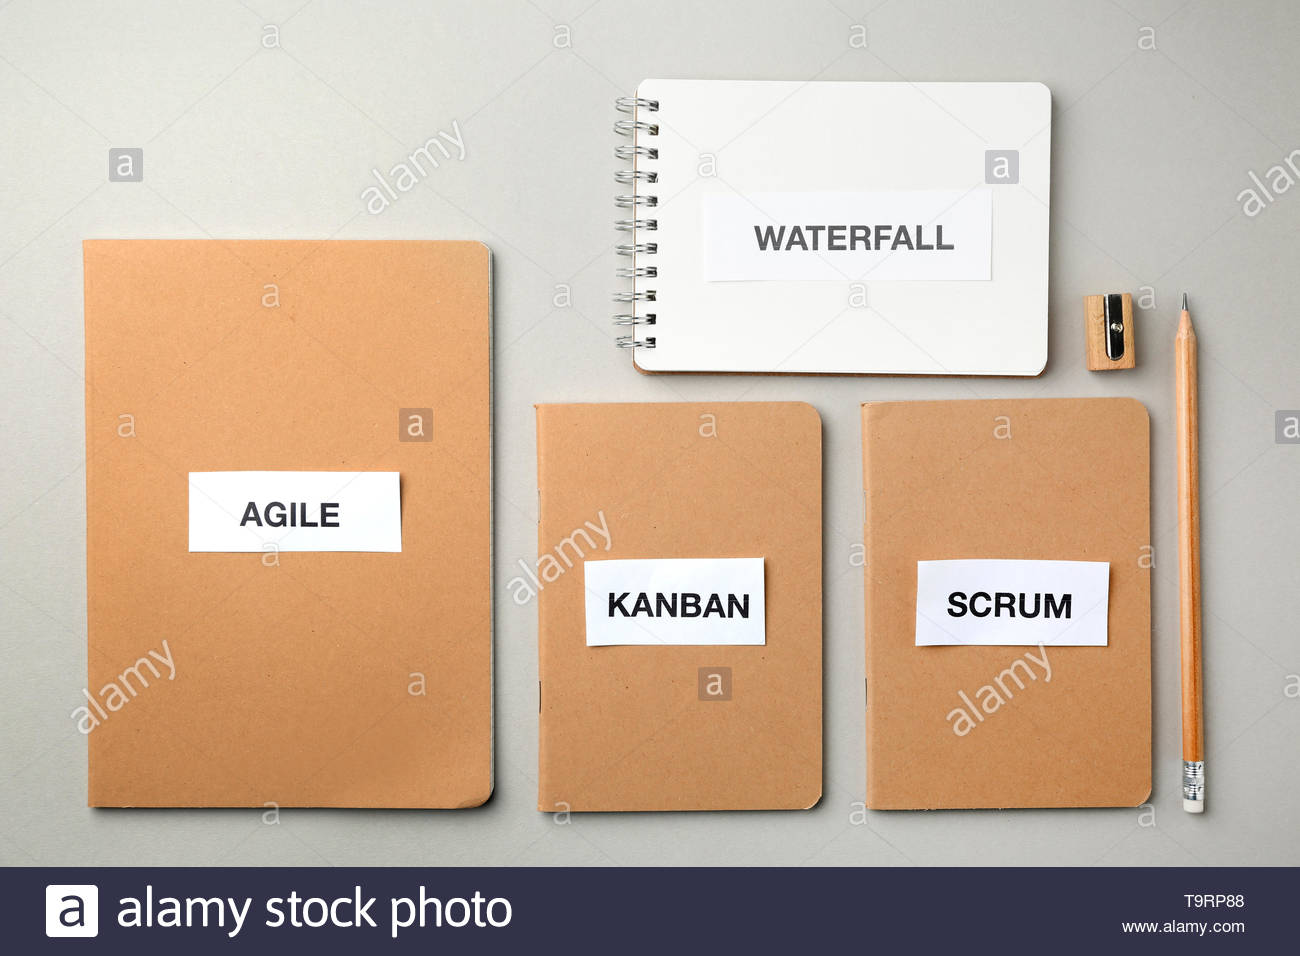 Notebooks with words AGILE WATERFALL KANBAN SCRUM on light 1300x956